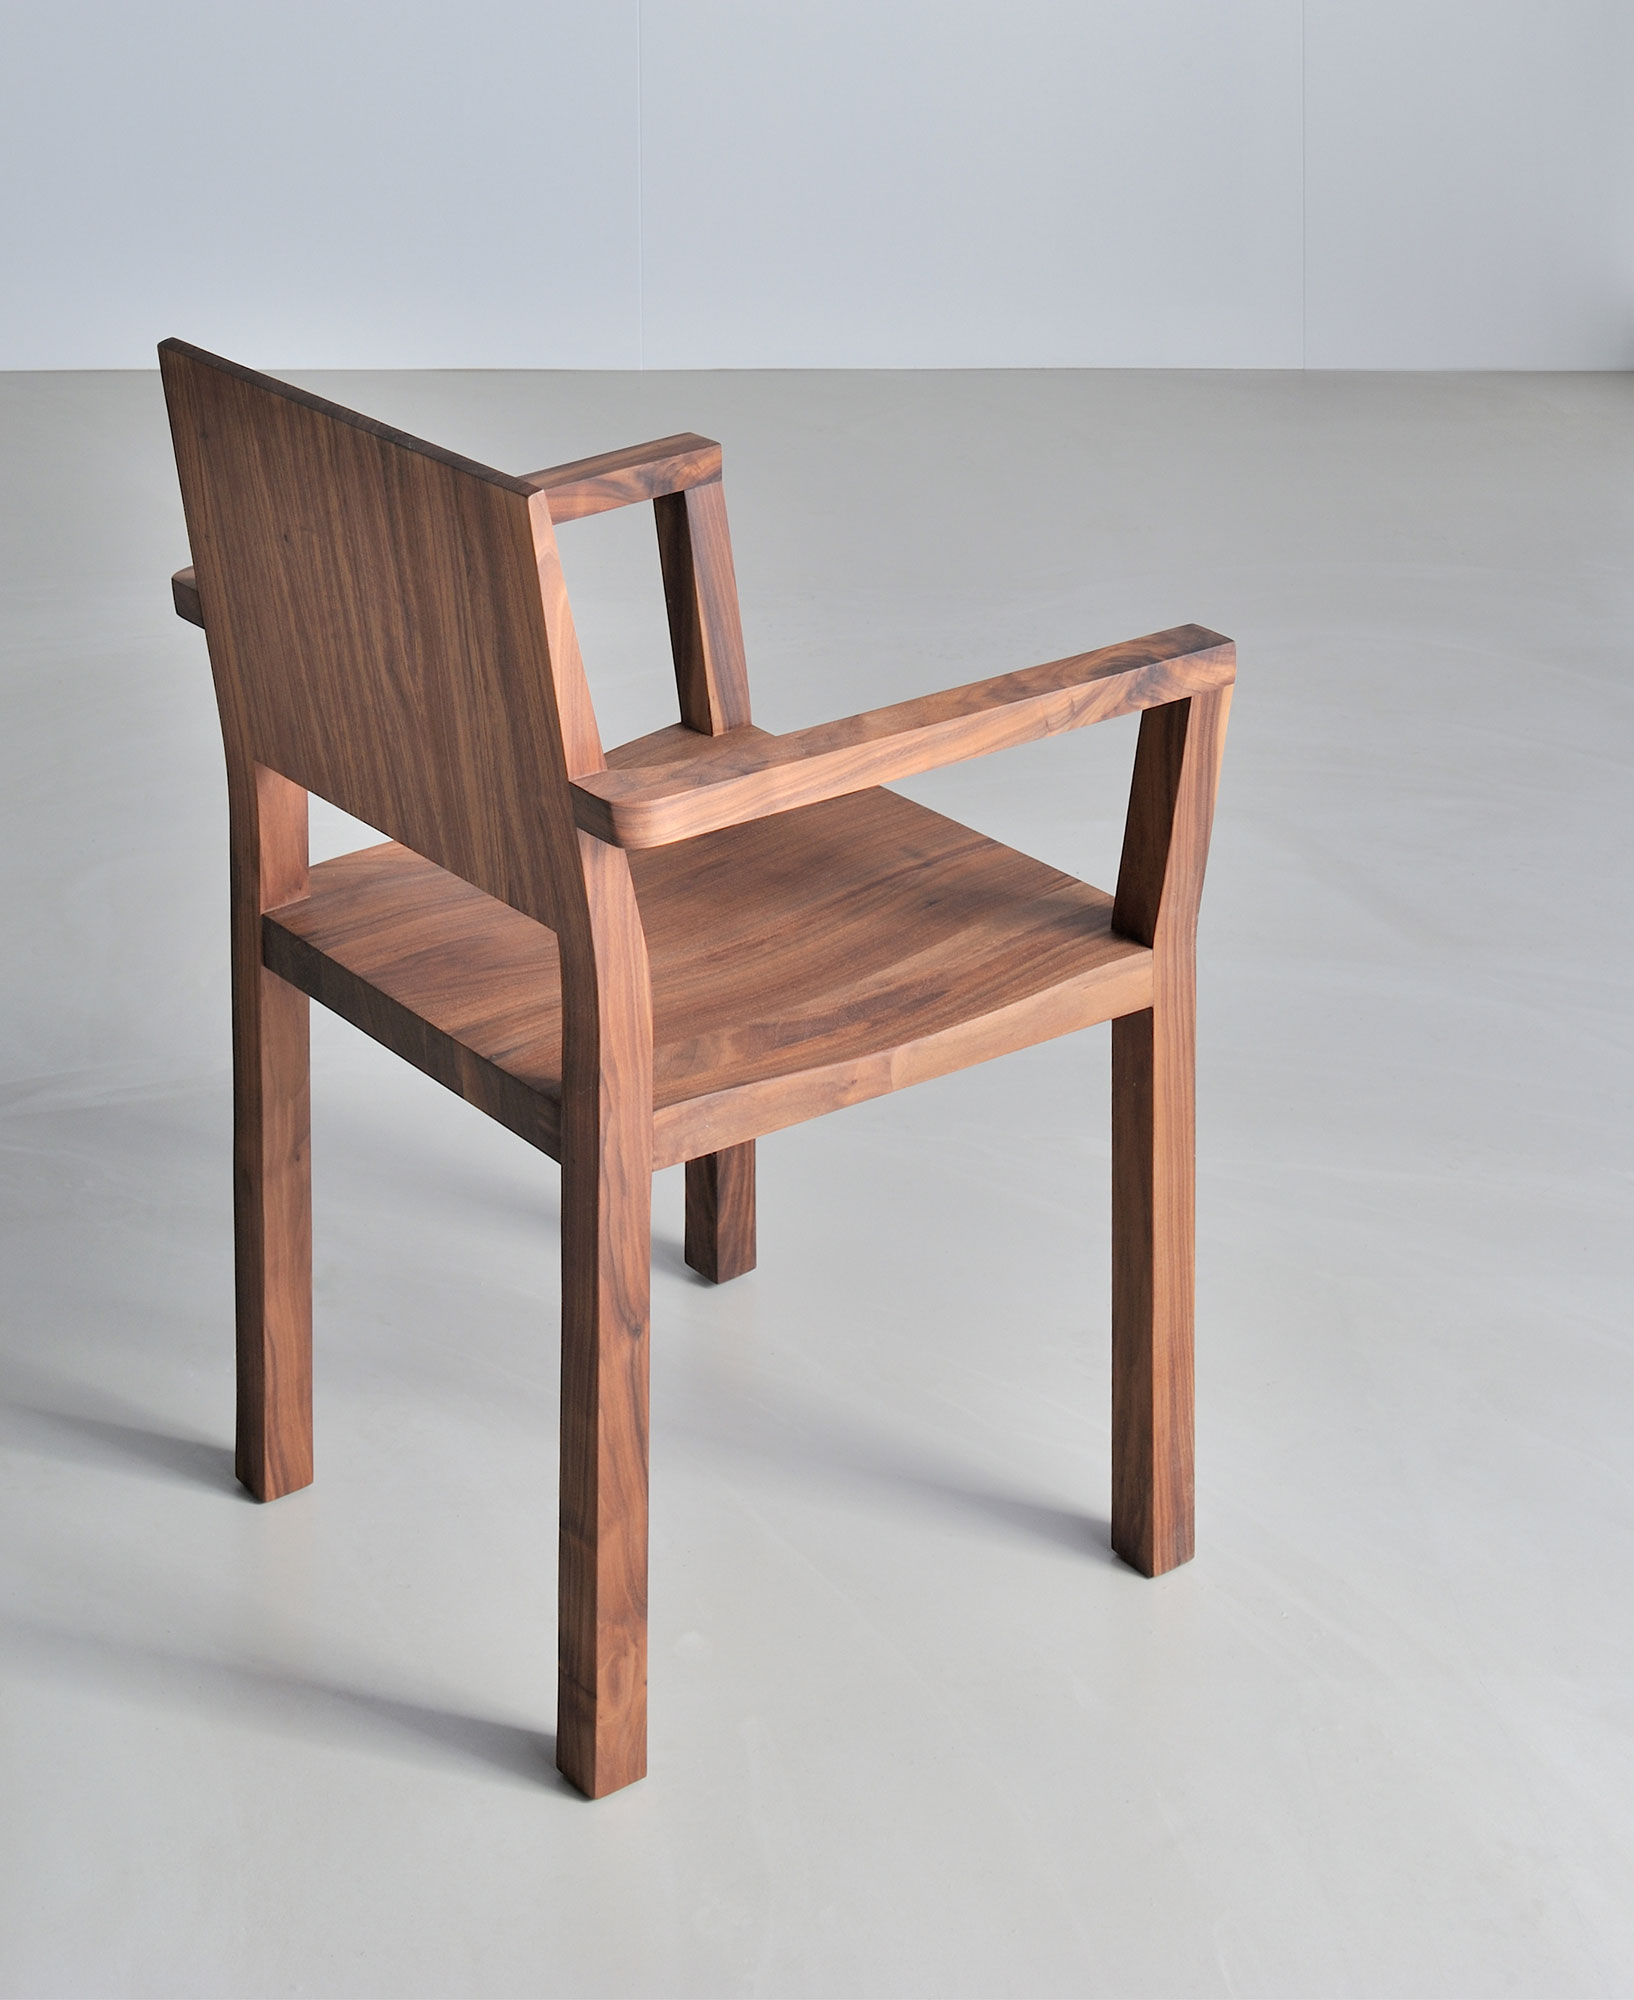 Solid Wood Armchair TAU-A 3335a custom made in solid wood by vitamin design